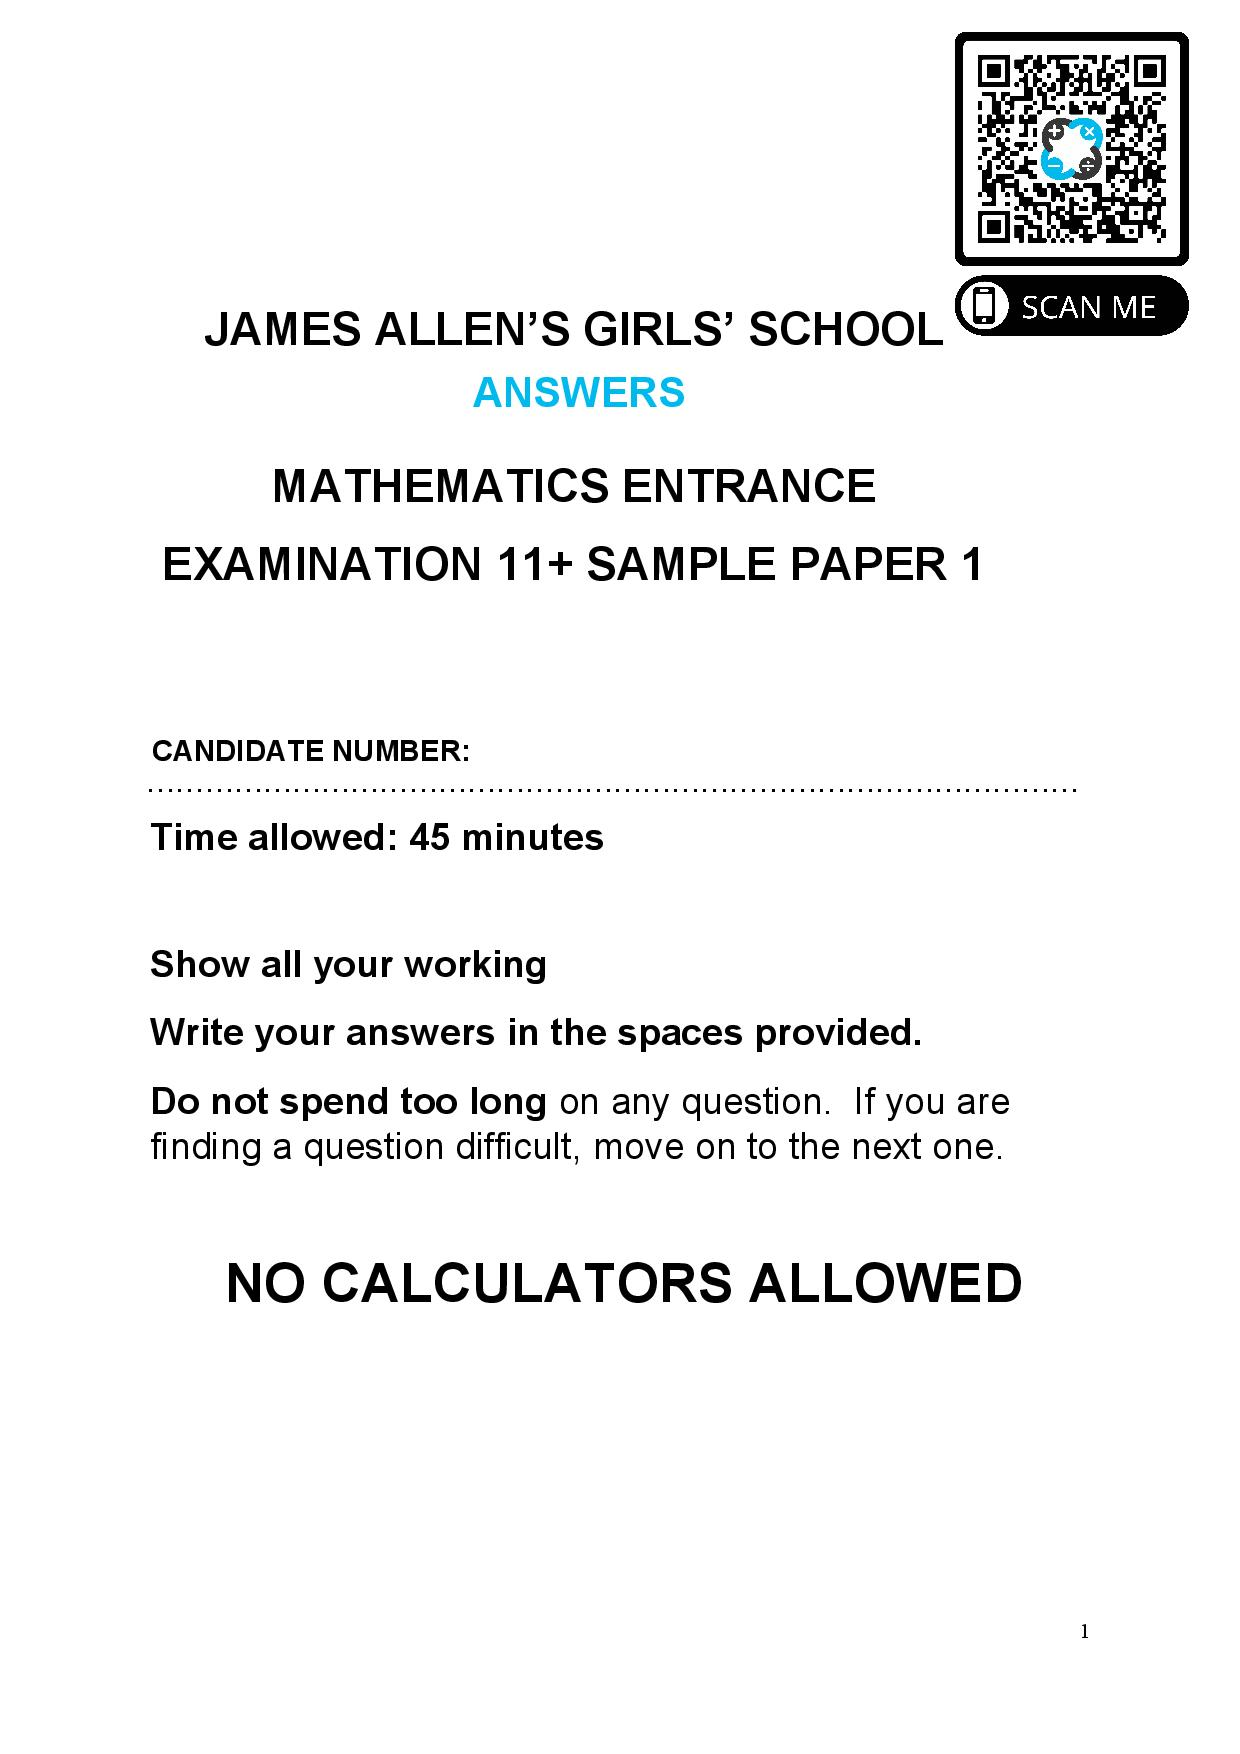 JAMES ALLENS GIRLS SCHOOL 11 ENTRANCE EXAMINATION SAMPLE PAPER MATHEMATICS Answer Paper page 001